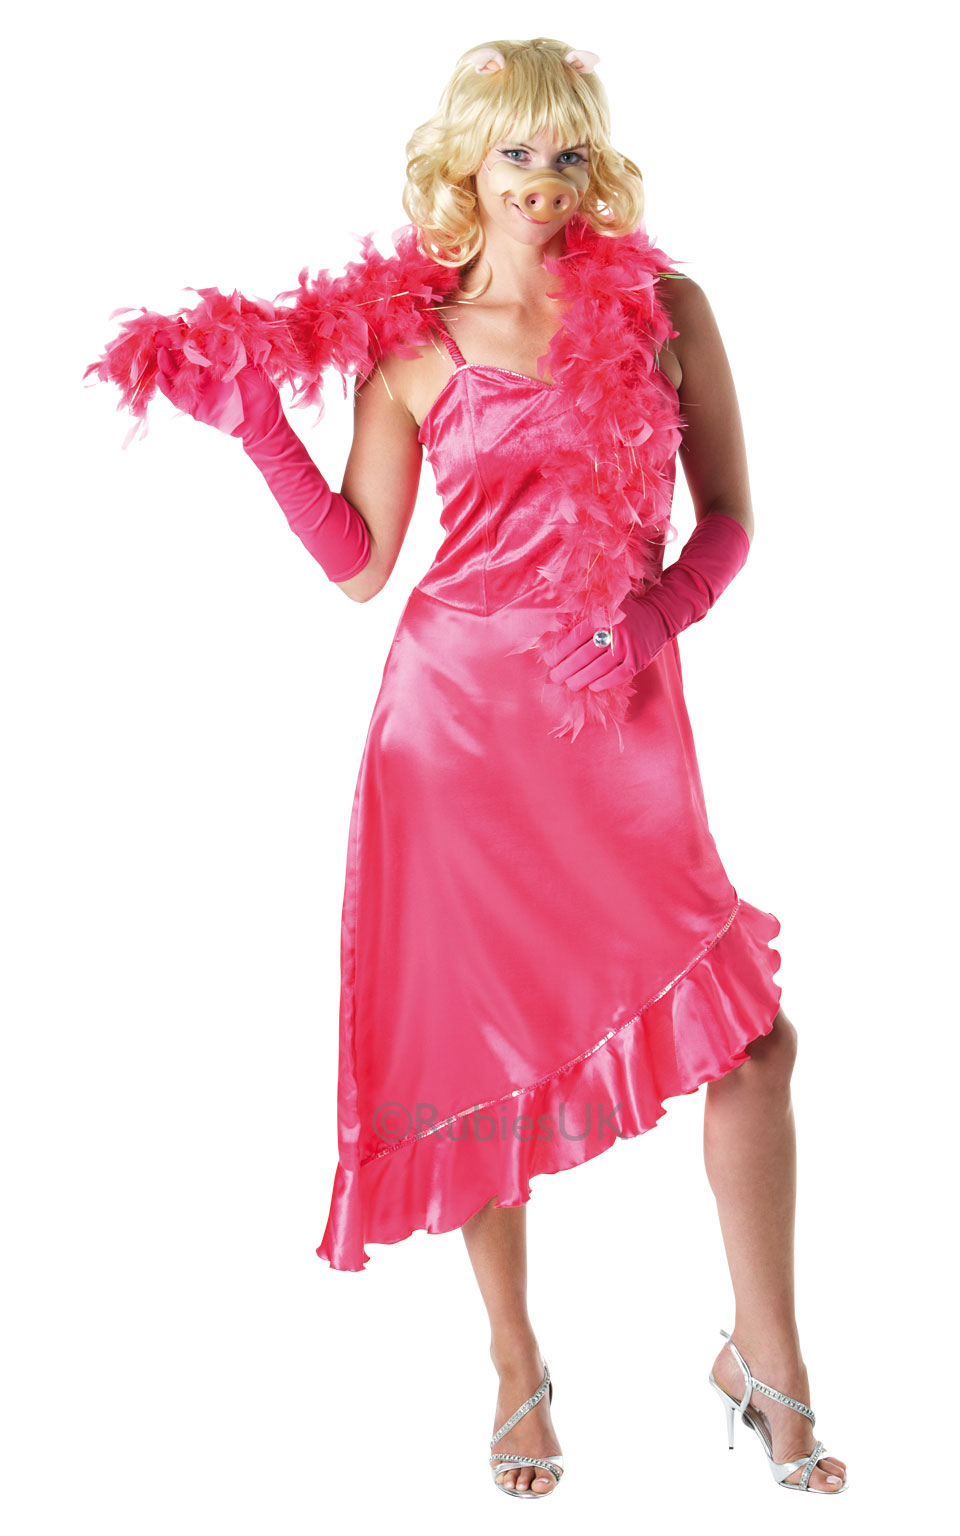 Womens Ladies Miss Piggy Fancy Dress Costume Outfit Rubies The Muppets Pig Tv